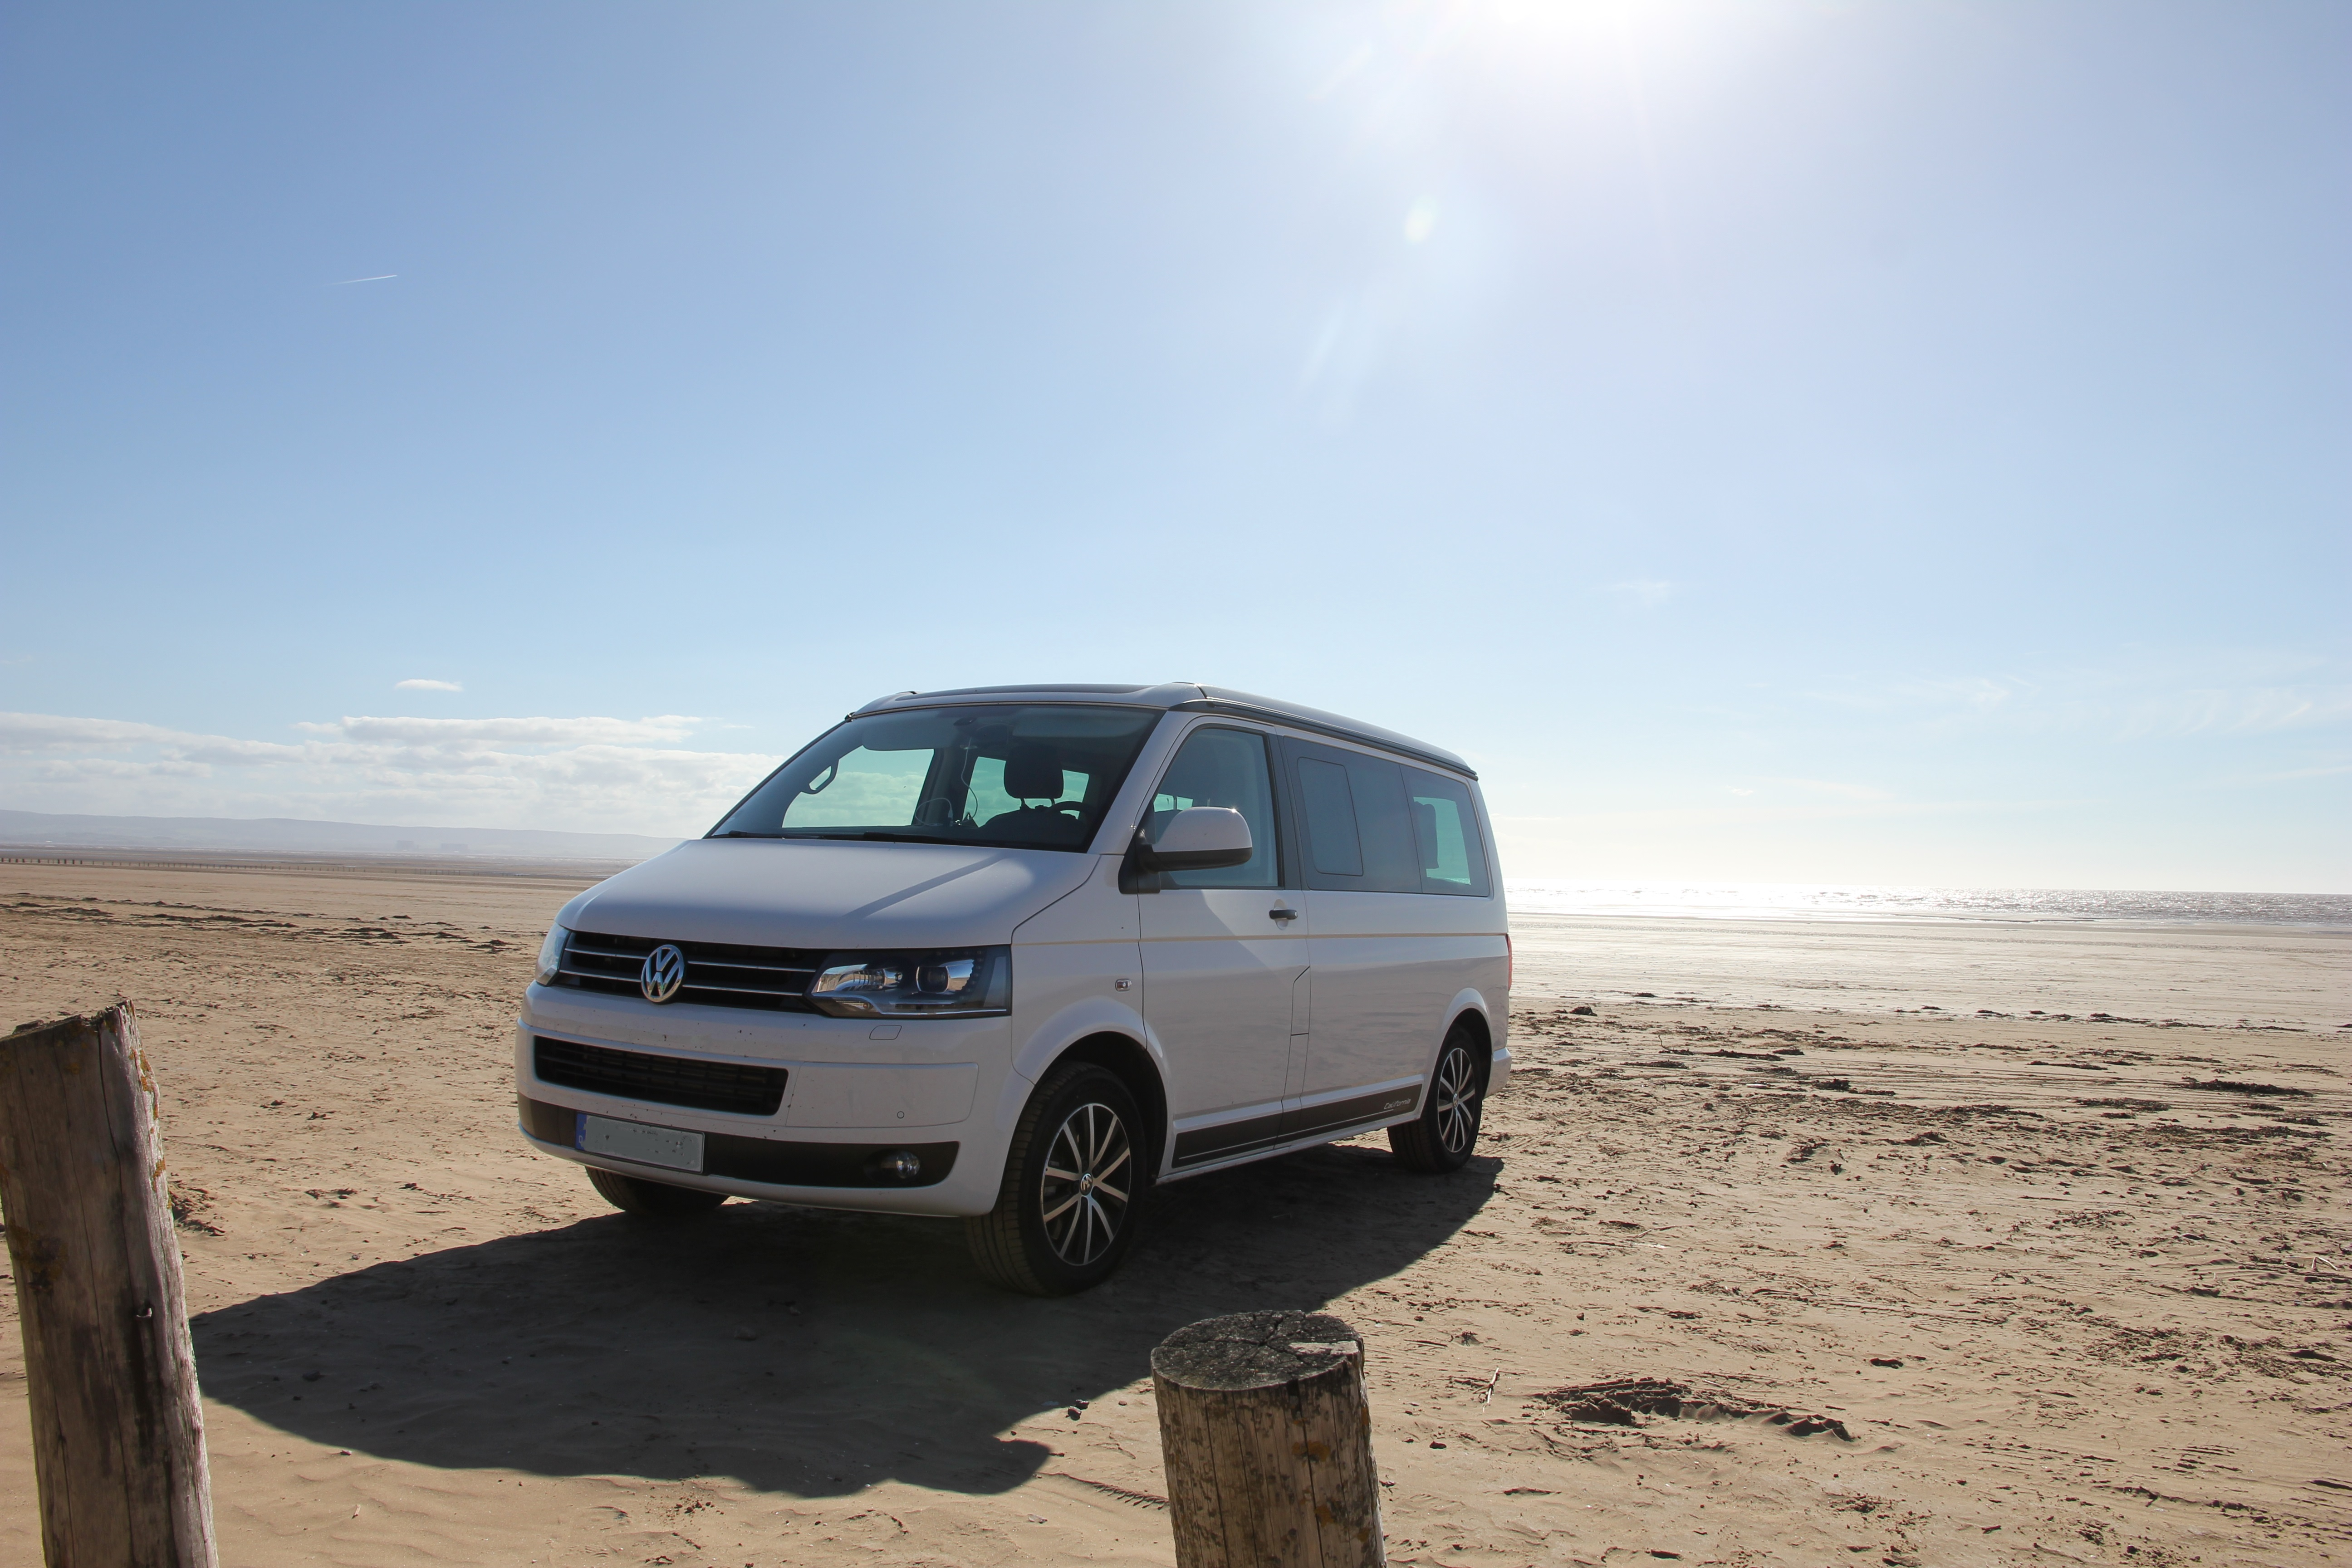 VW T5 T6 California Schottland Roadtrip 2015 Cardiff Beach